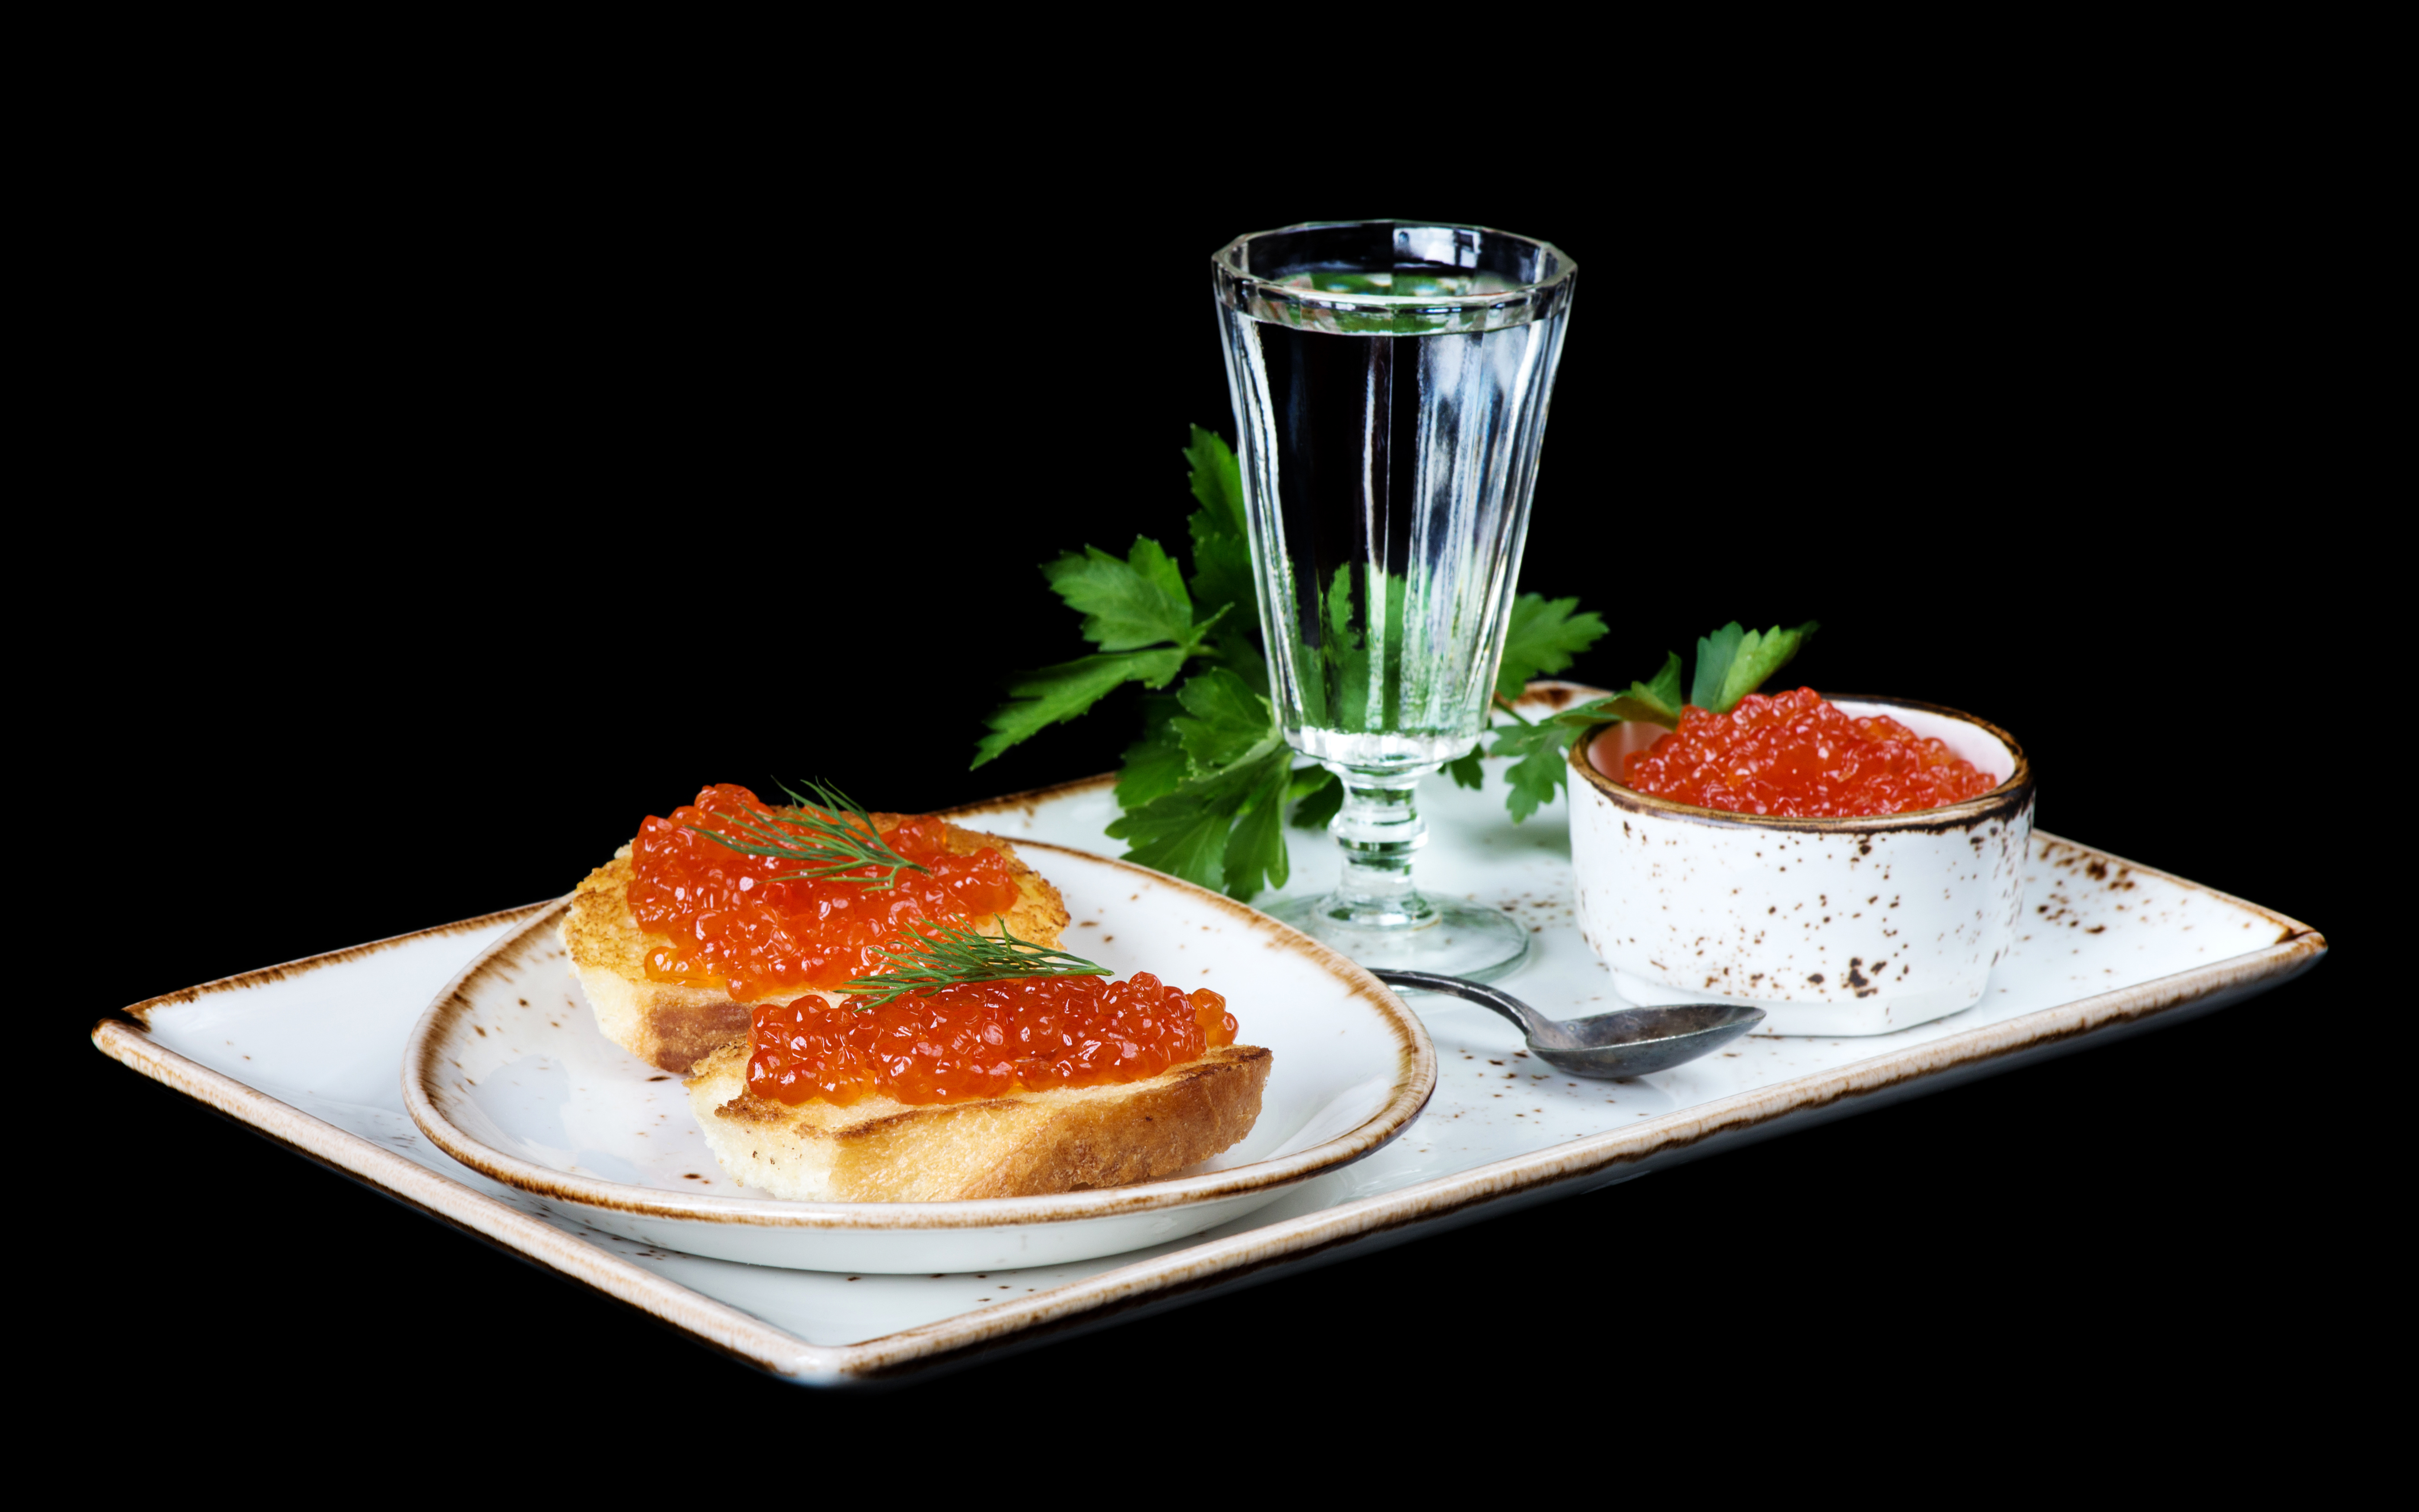 2017Food_A_glass_of_vodka__sandwiches_with_red_caviar_and_parsley_on_the_table_118419_.jpg